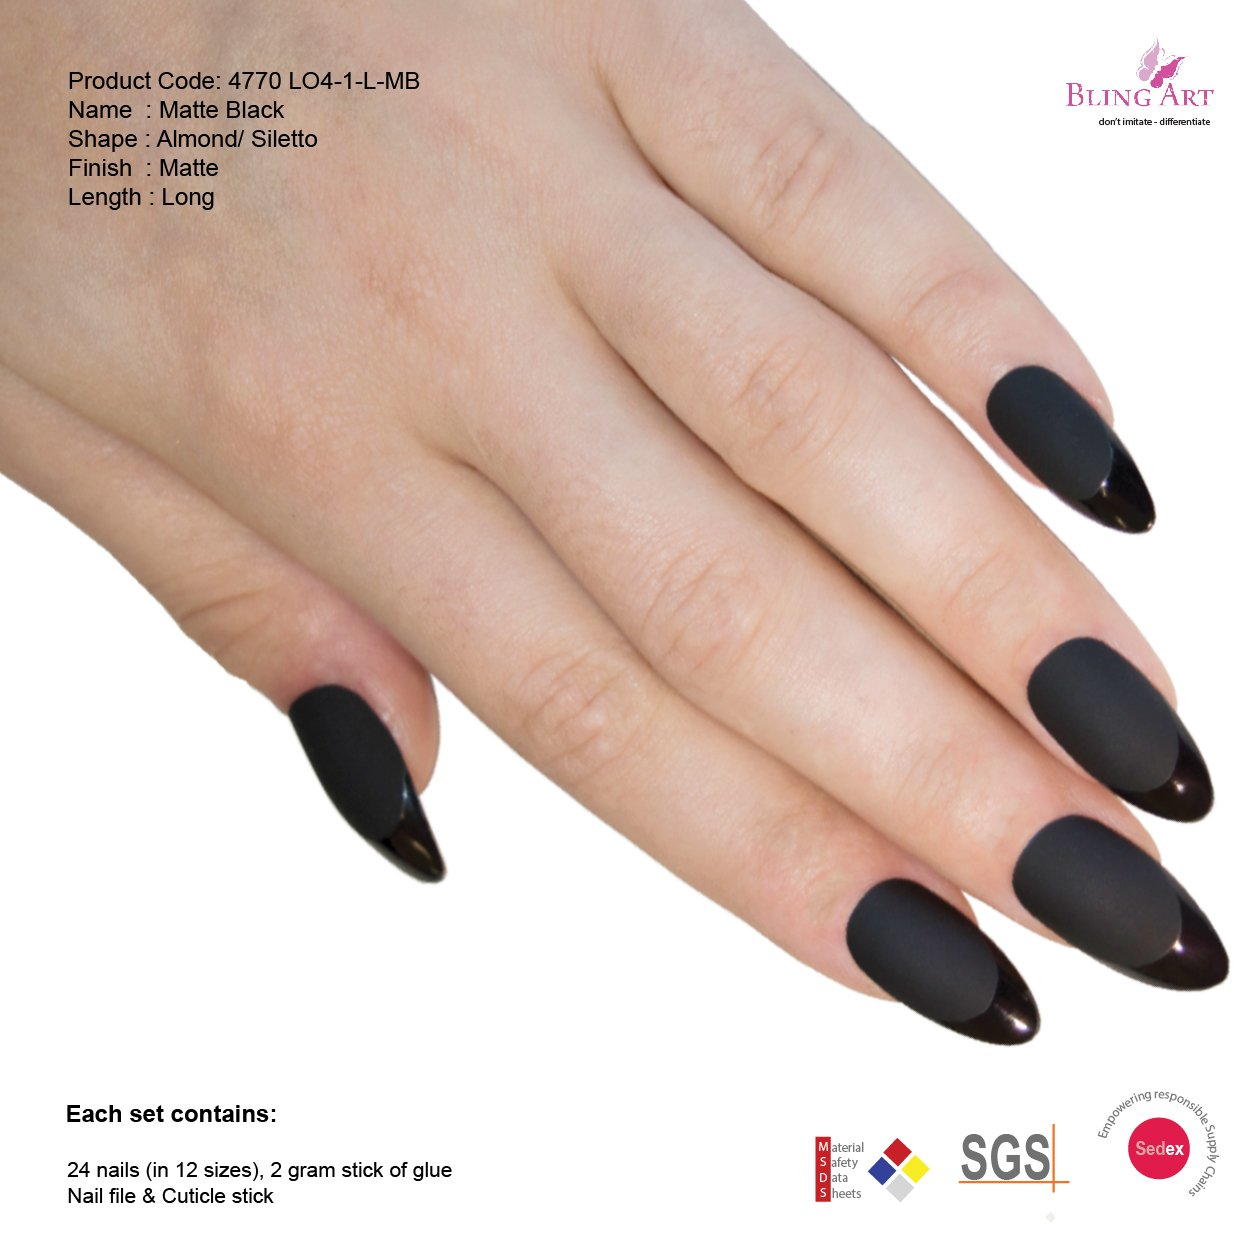 Amazon.com : Bling Art Almond False Nails Fake Stiletto Matte Black ...